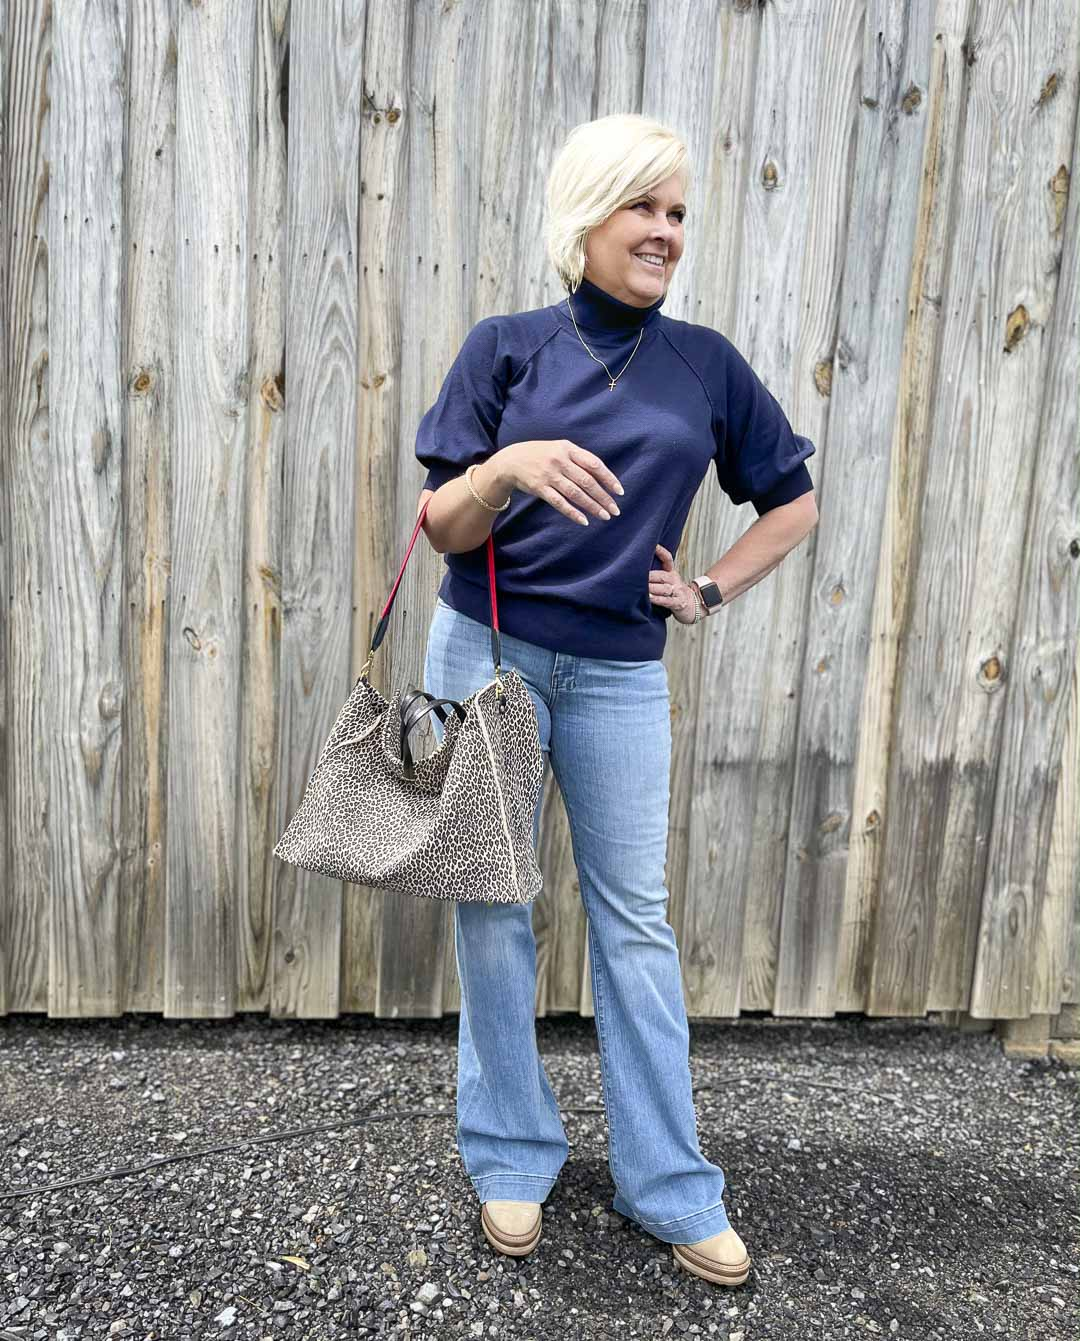 Over 40 Fashion Blogger, Tania Stephens, is wearing a navy turtleneck sweater with a pair of flare jeans and carrying a large tote bag